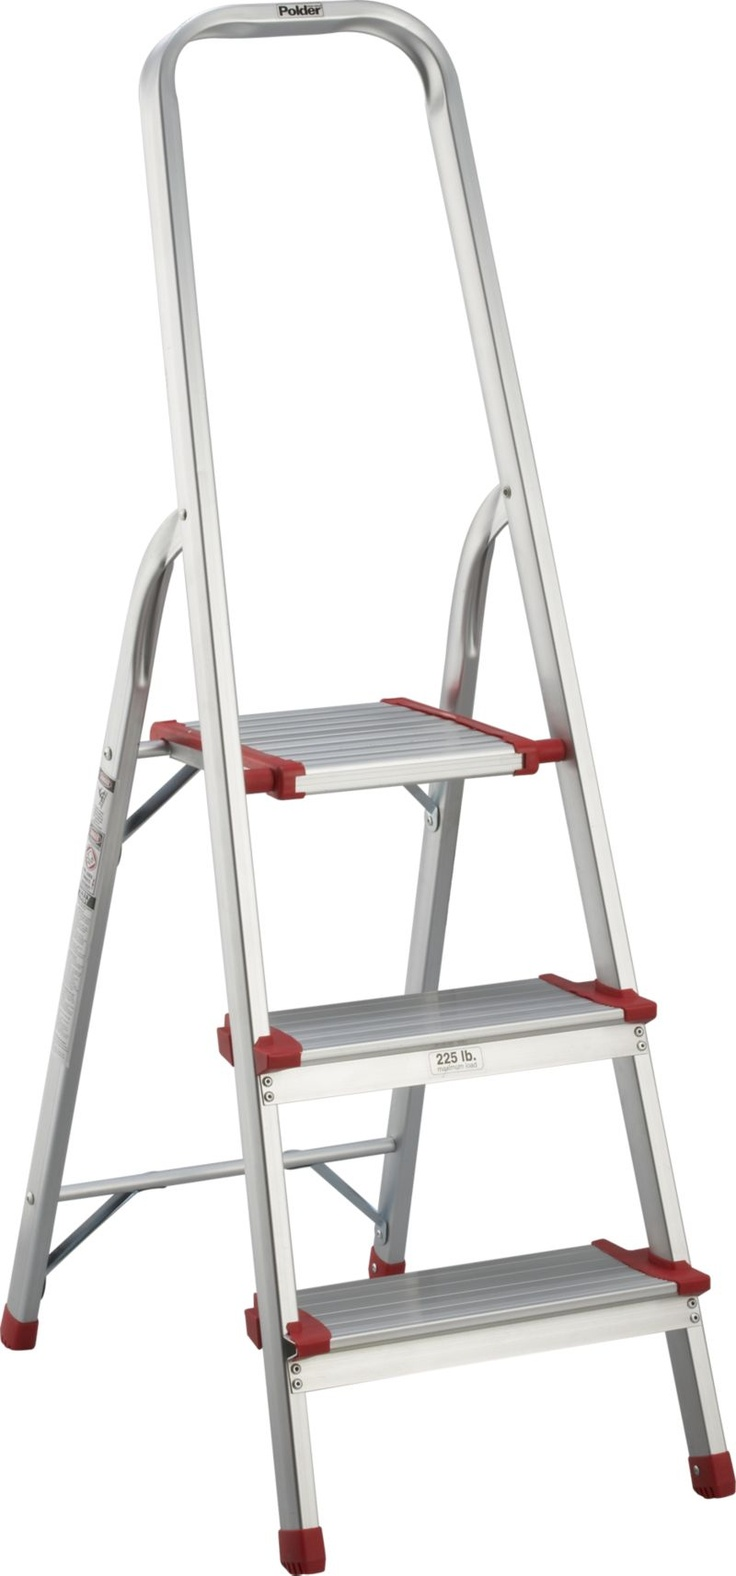 3-Step Ladder in Step Stools | Crate and Barrel